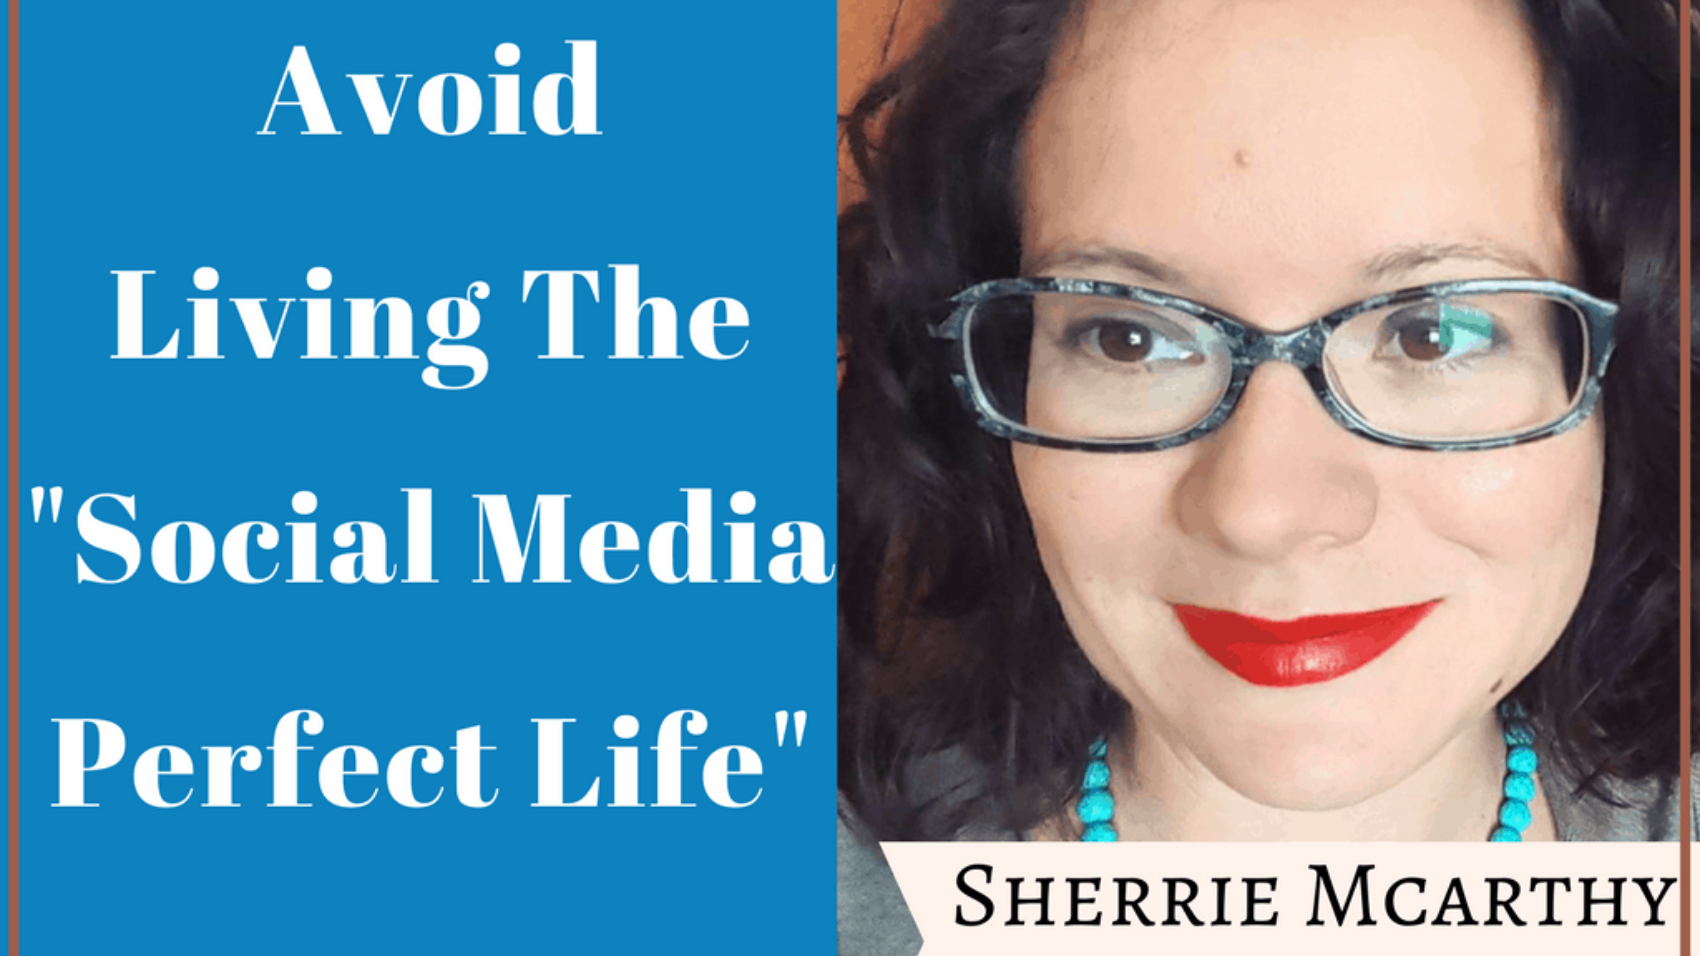 How to Avoid Living The Social Media Perfect Life